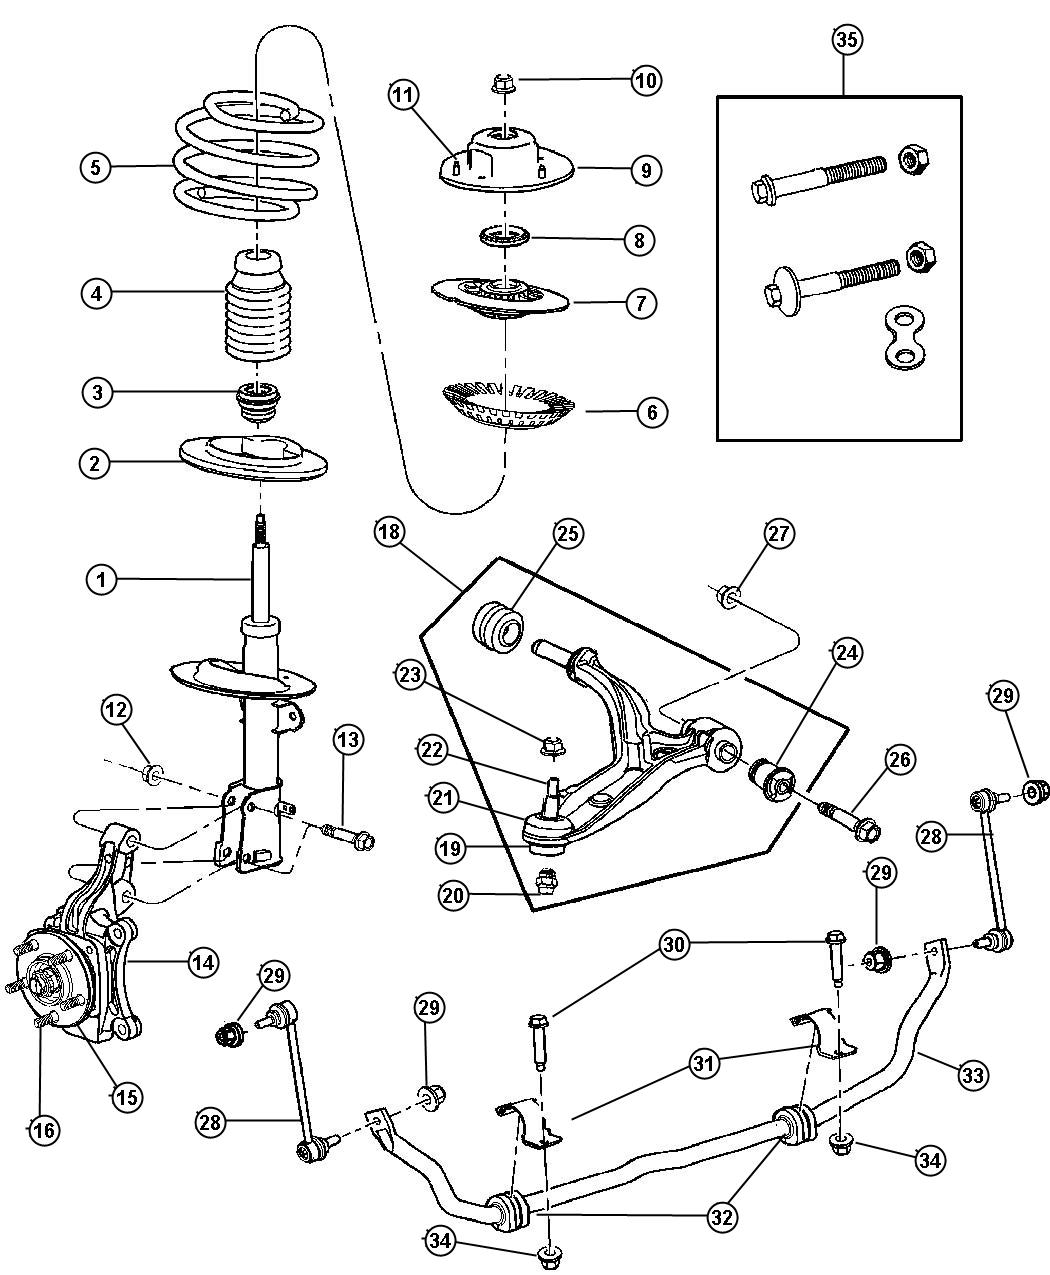 hight resolution of dodge neon wiring diagram download diagrams dodge auto 1995 dodge neon 1999 dodge neon highline